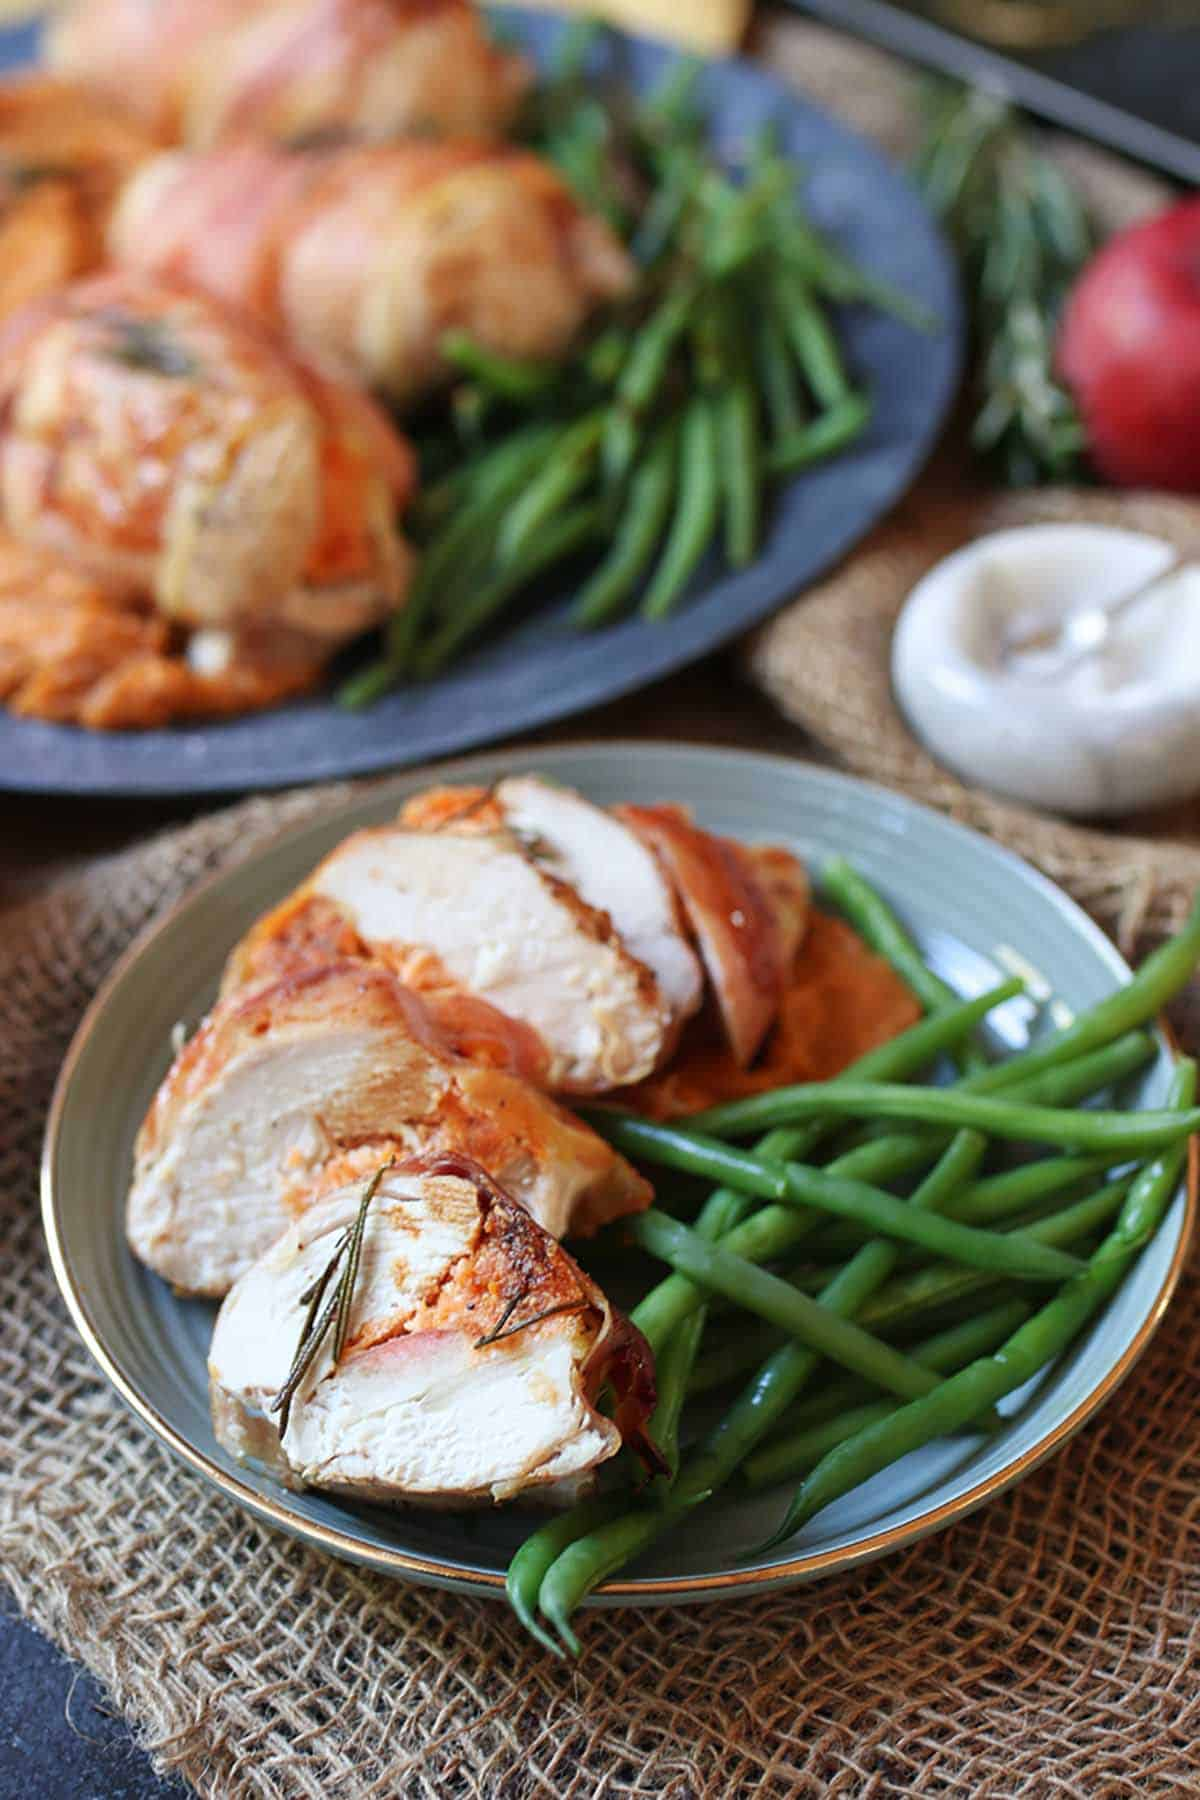 Complete holiday recipe cut in four pieces on a blue plate with green beans on the side.